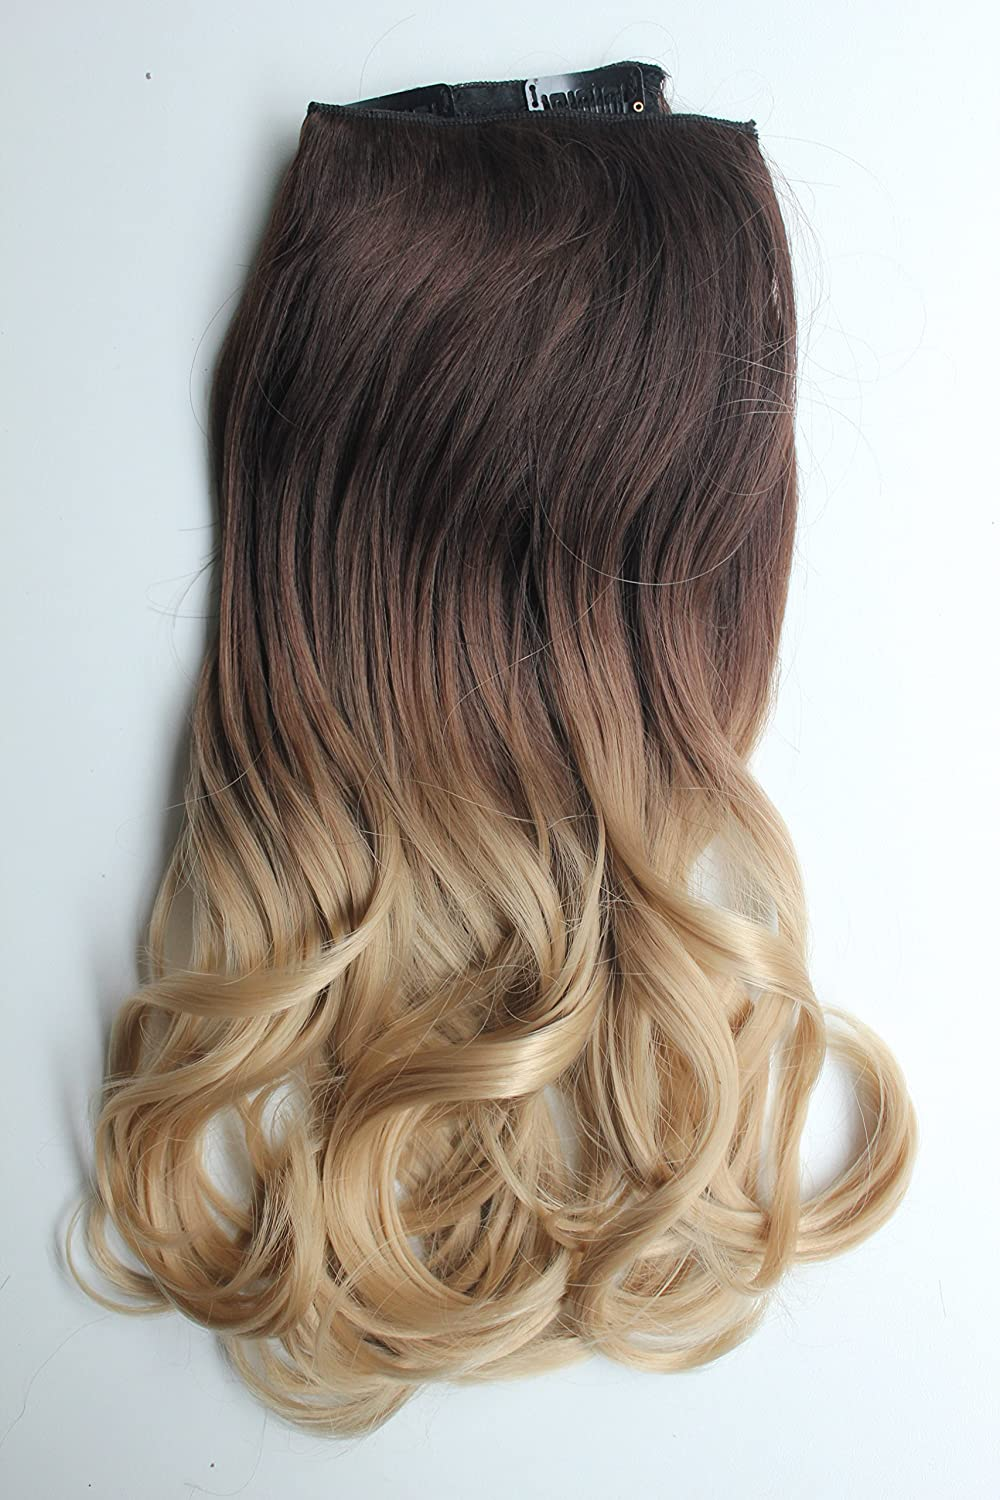 Ombre Full Head Clip In Hair Extensions 2461cm Curly Dark Brown